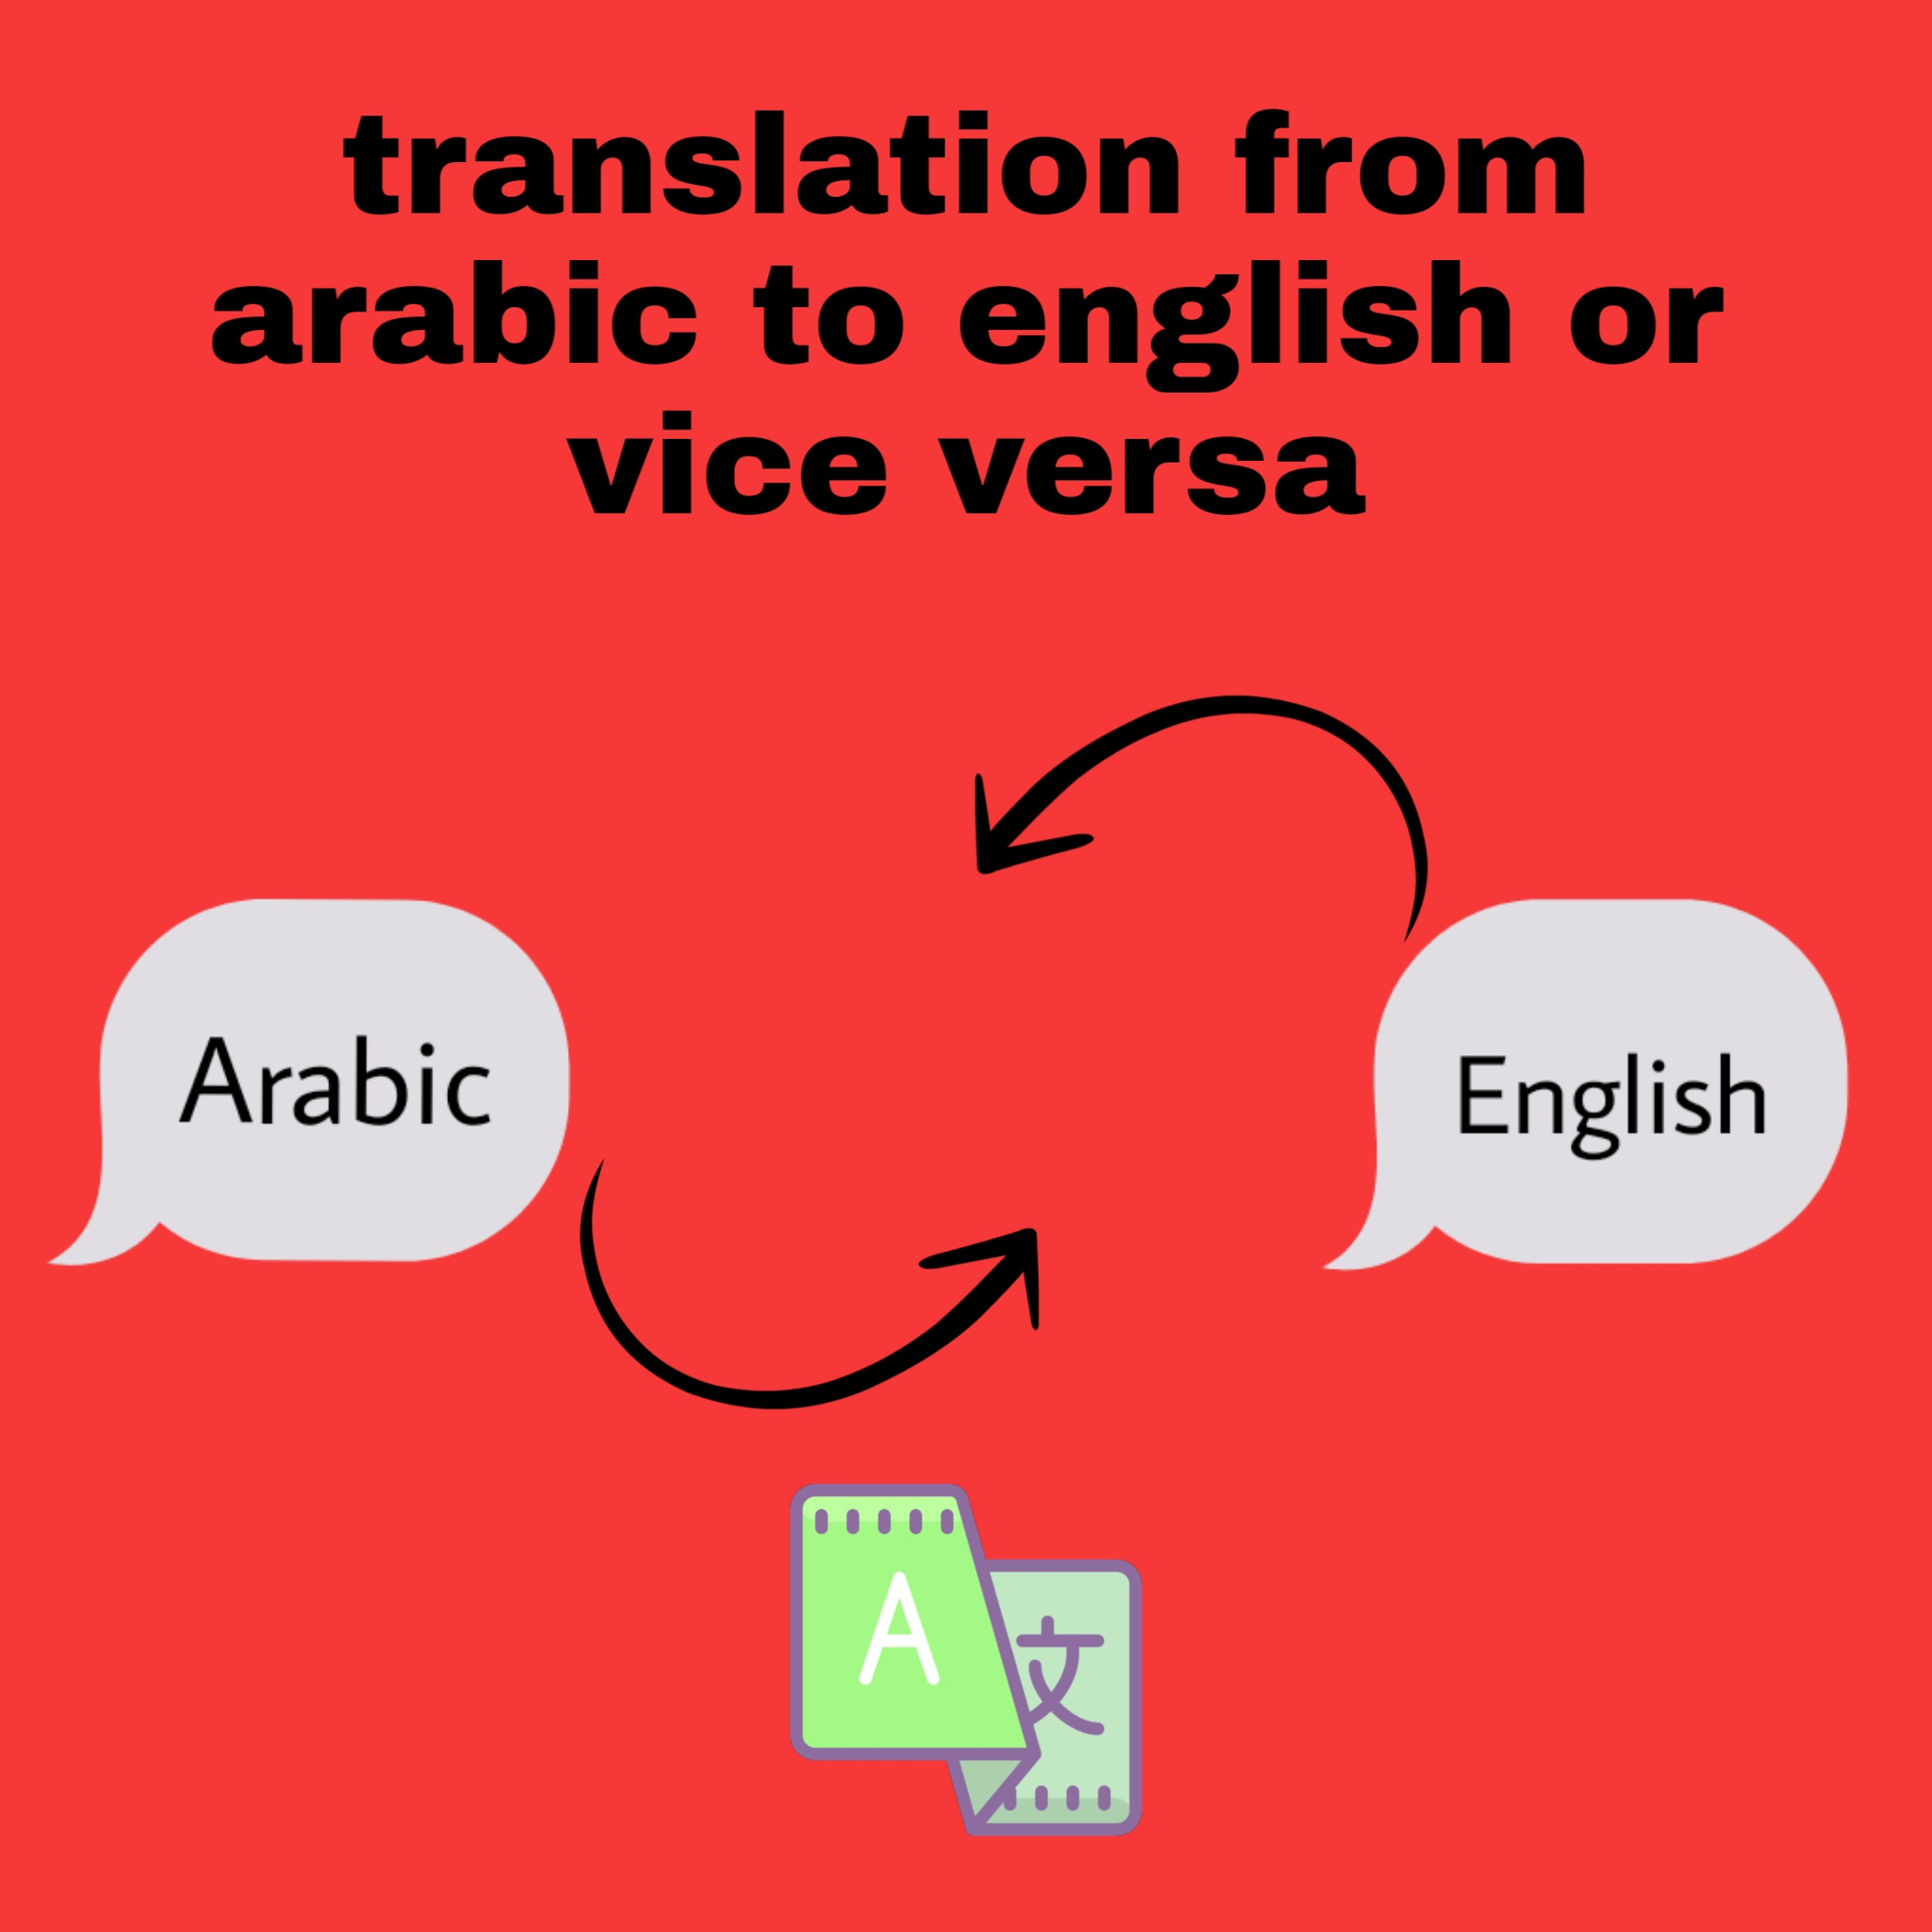 Translation from Arabic to English or vice versa.